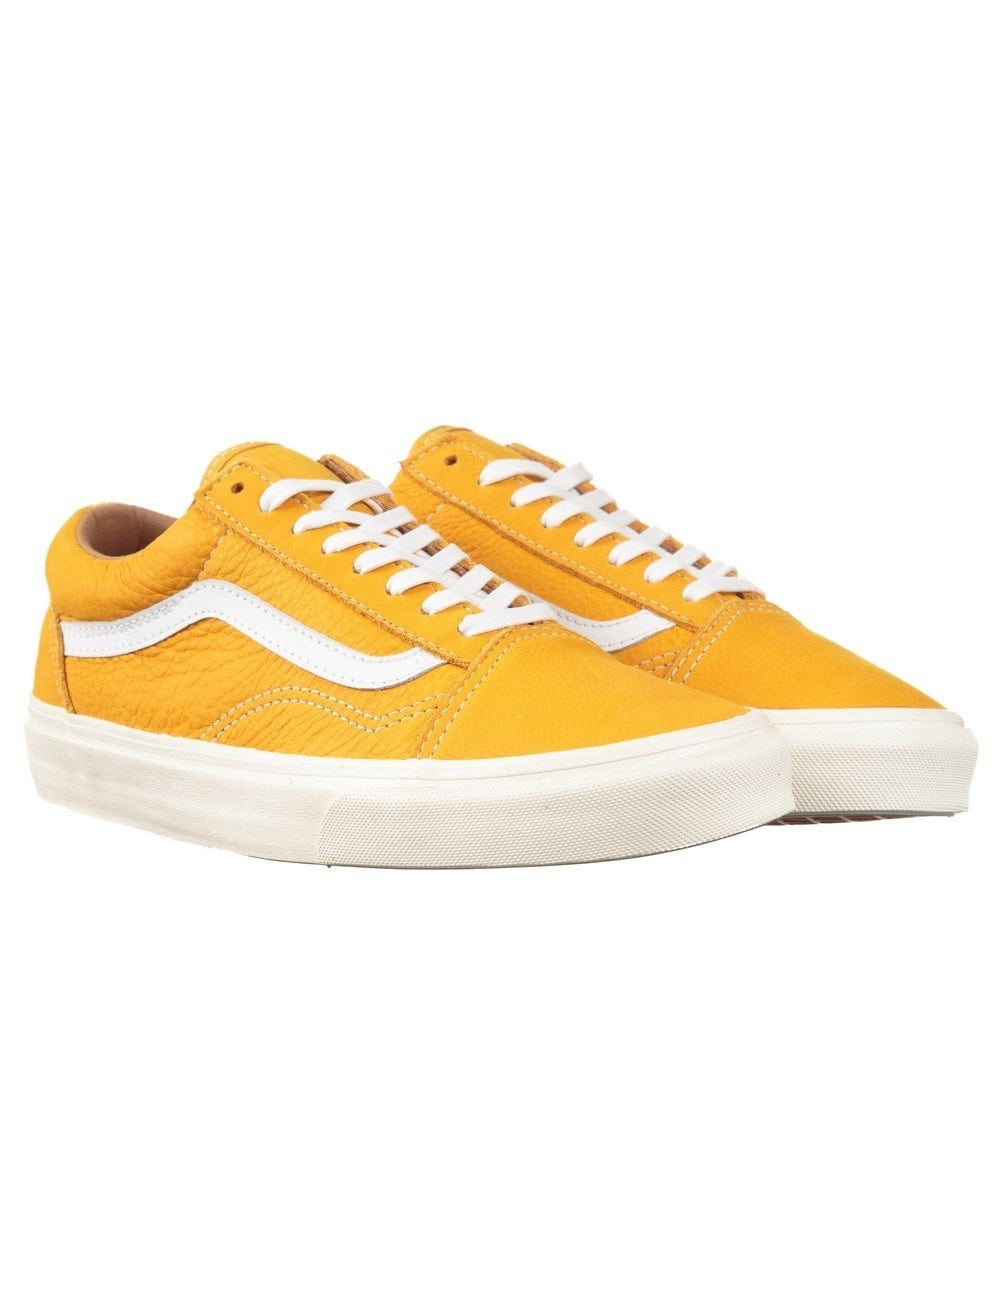 e4be9f942d Vans Classics Old Skool Reissue Shoes - Mineral Yellow (Classic Leather)